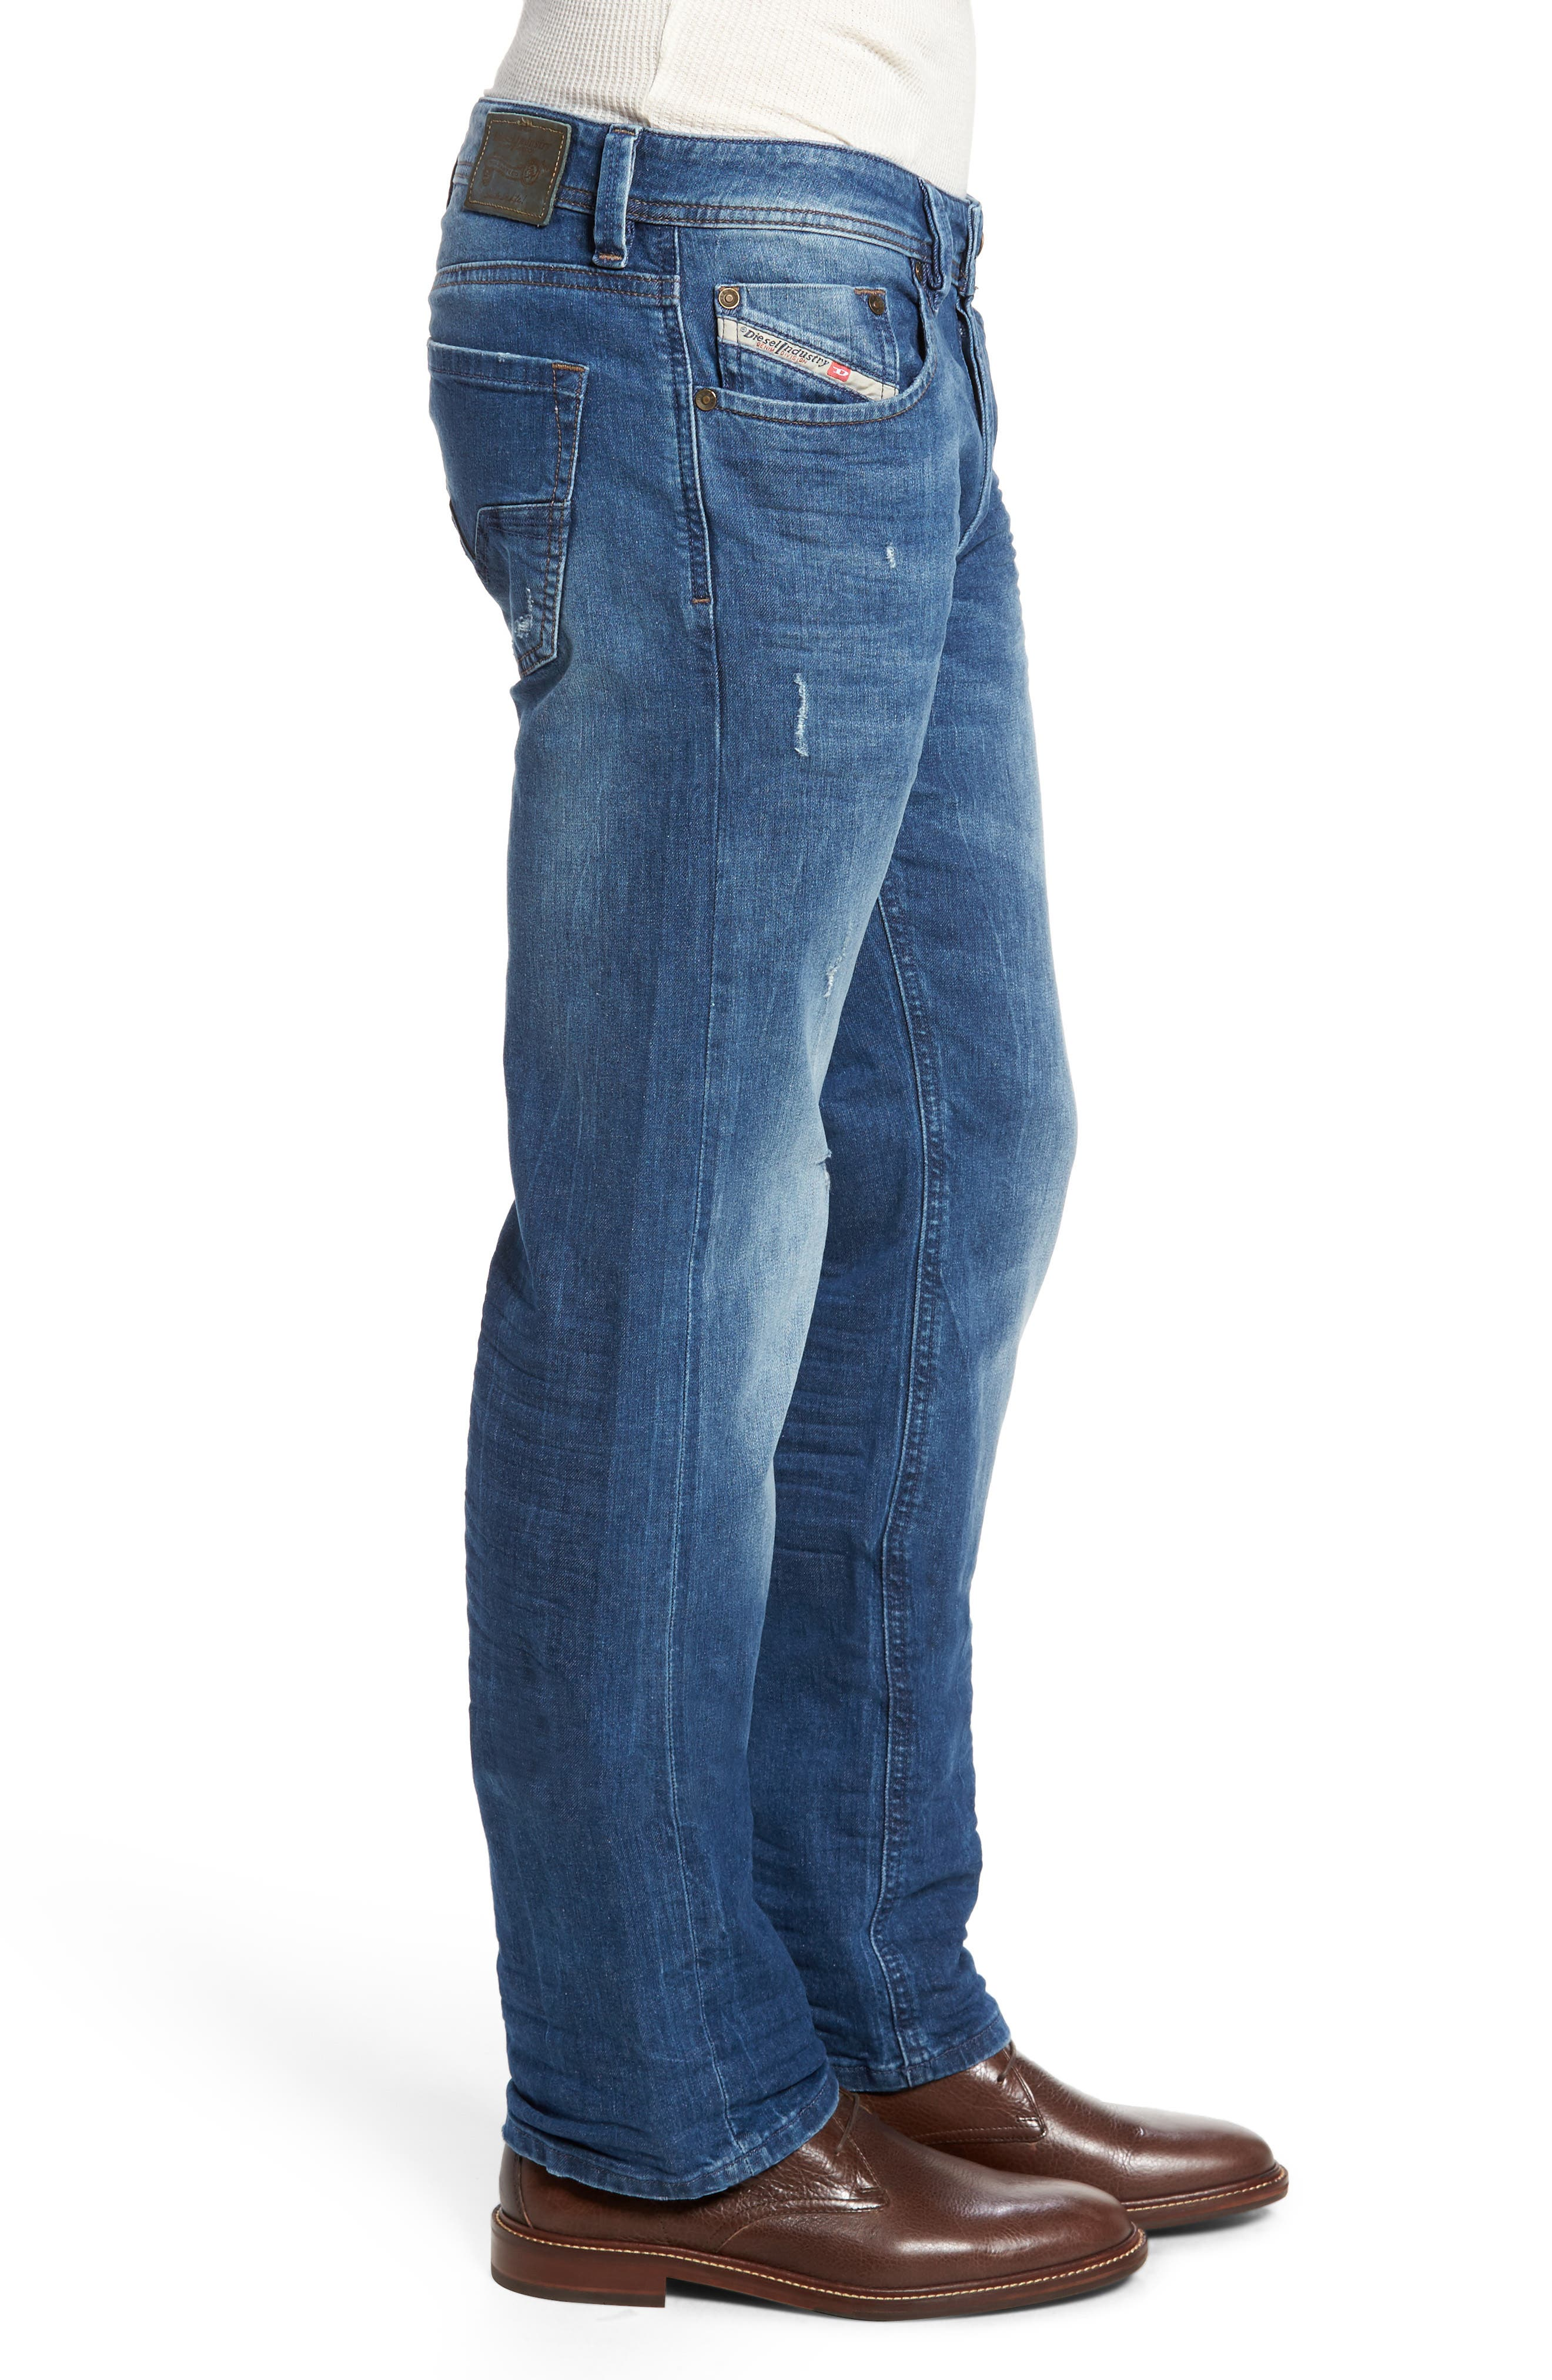 Larkee Relaxed Fit Jeans,                             Alternate thumbnail 3, color,                             C84ky